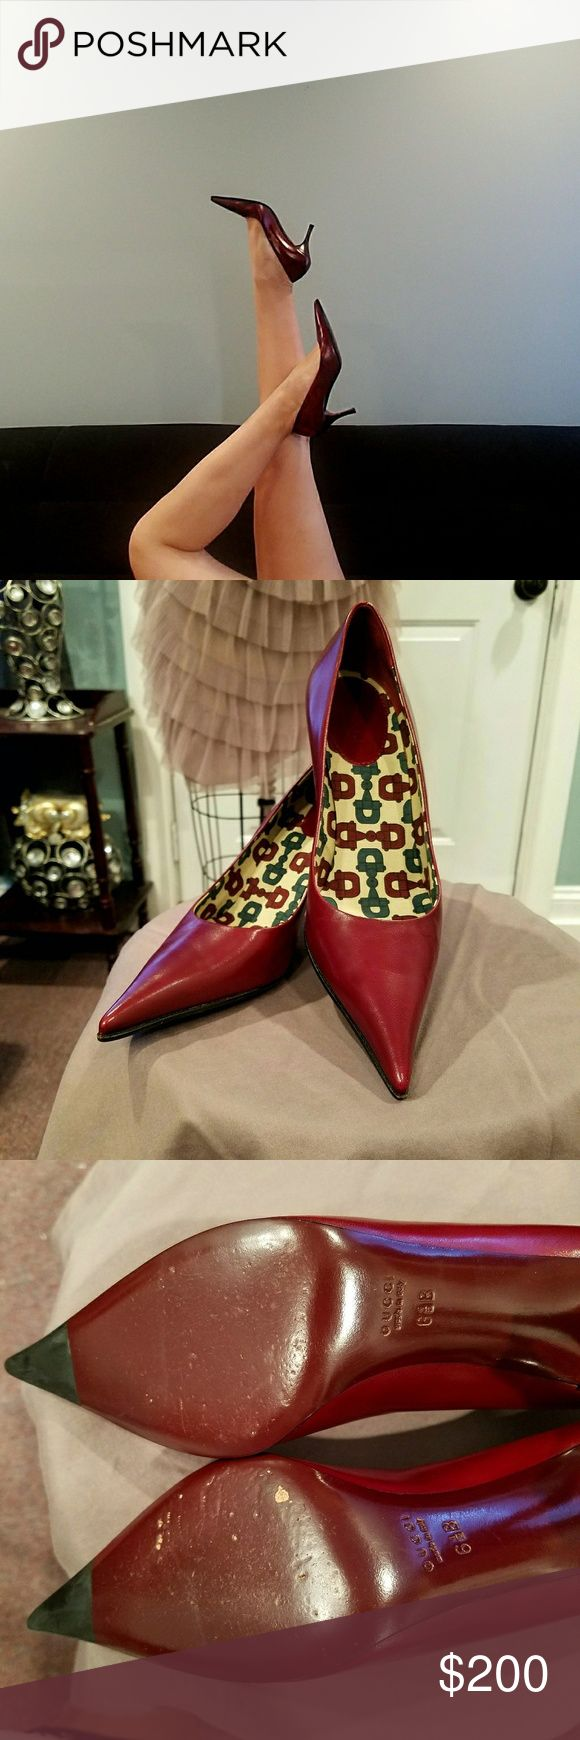 Vintage Gucci Heels Authentic Maroon Gucci Heels. Size 6 1/2. Heel is about 2 1/2 inches.  Only worn twice, in VERY good condition. It's a classic style that goes beautiful with pants and dresses. Shoes Heels